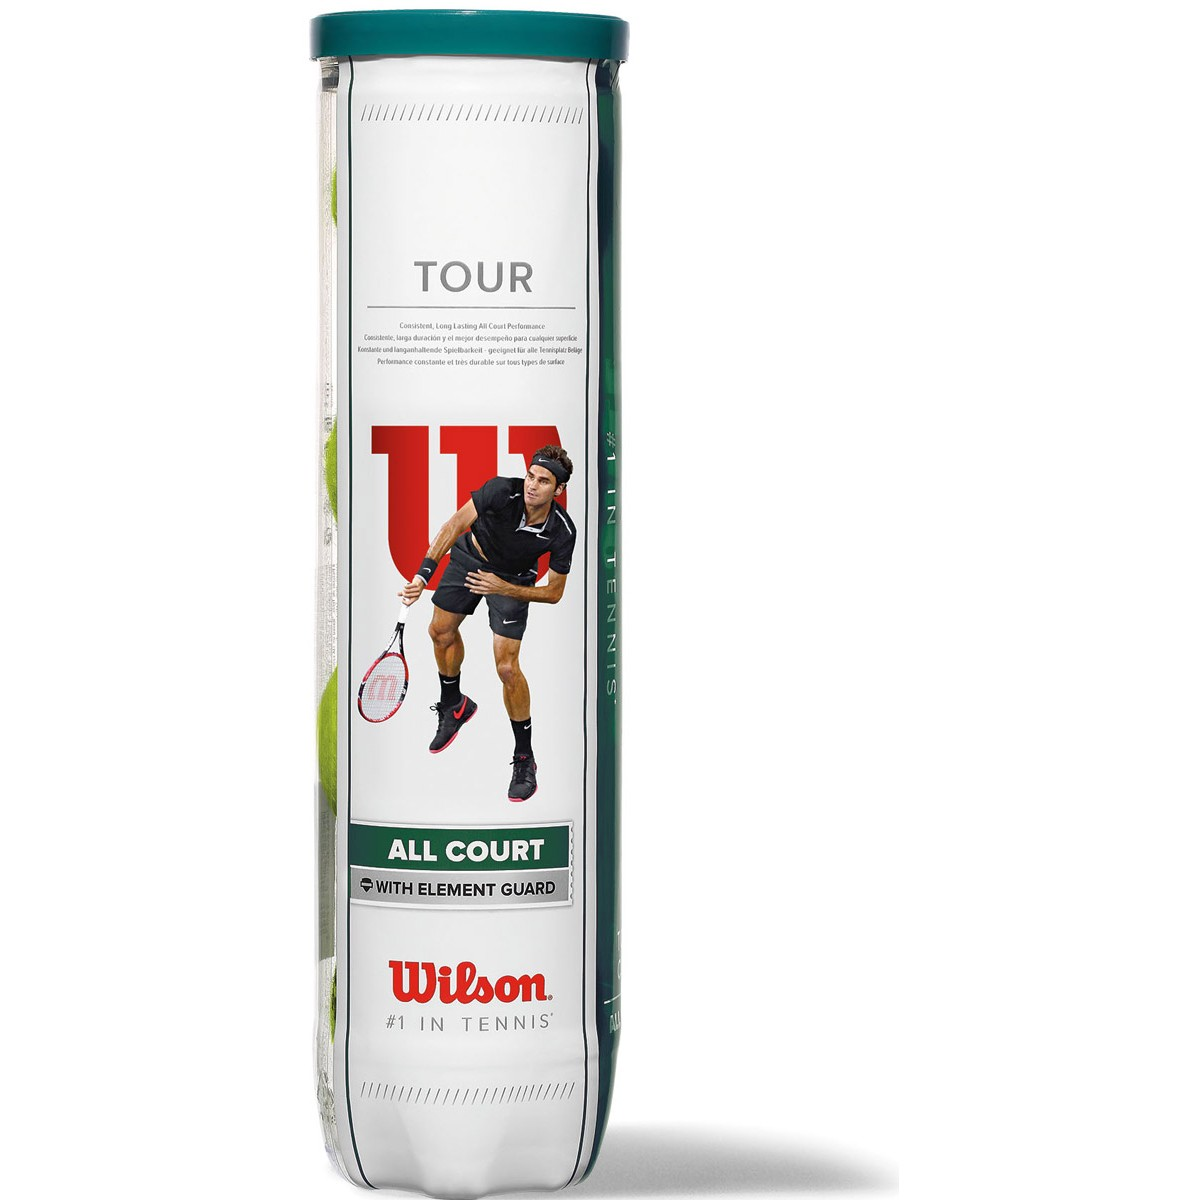 CAN OF 4 WILSON TOUR ALL COURT BALLS